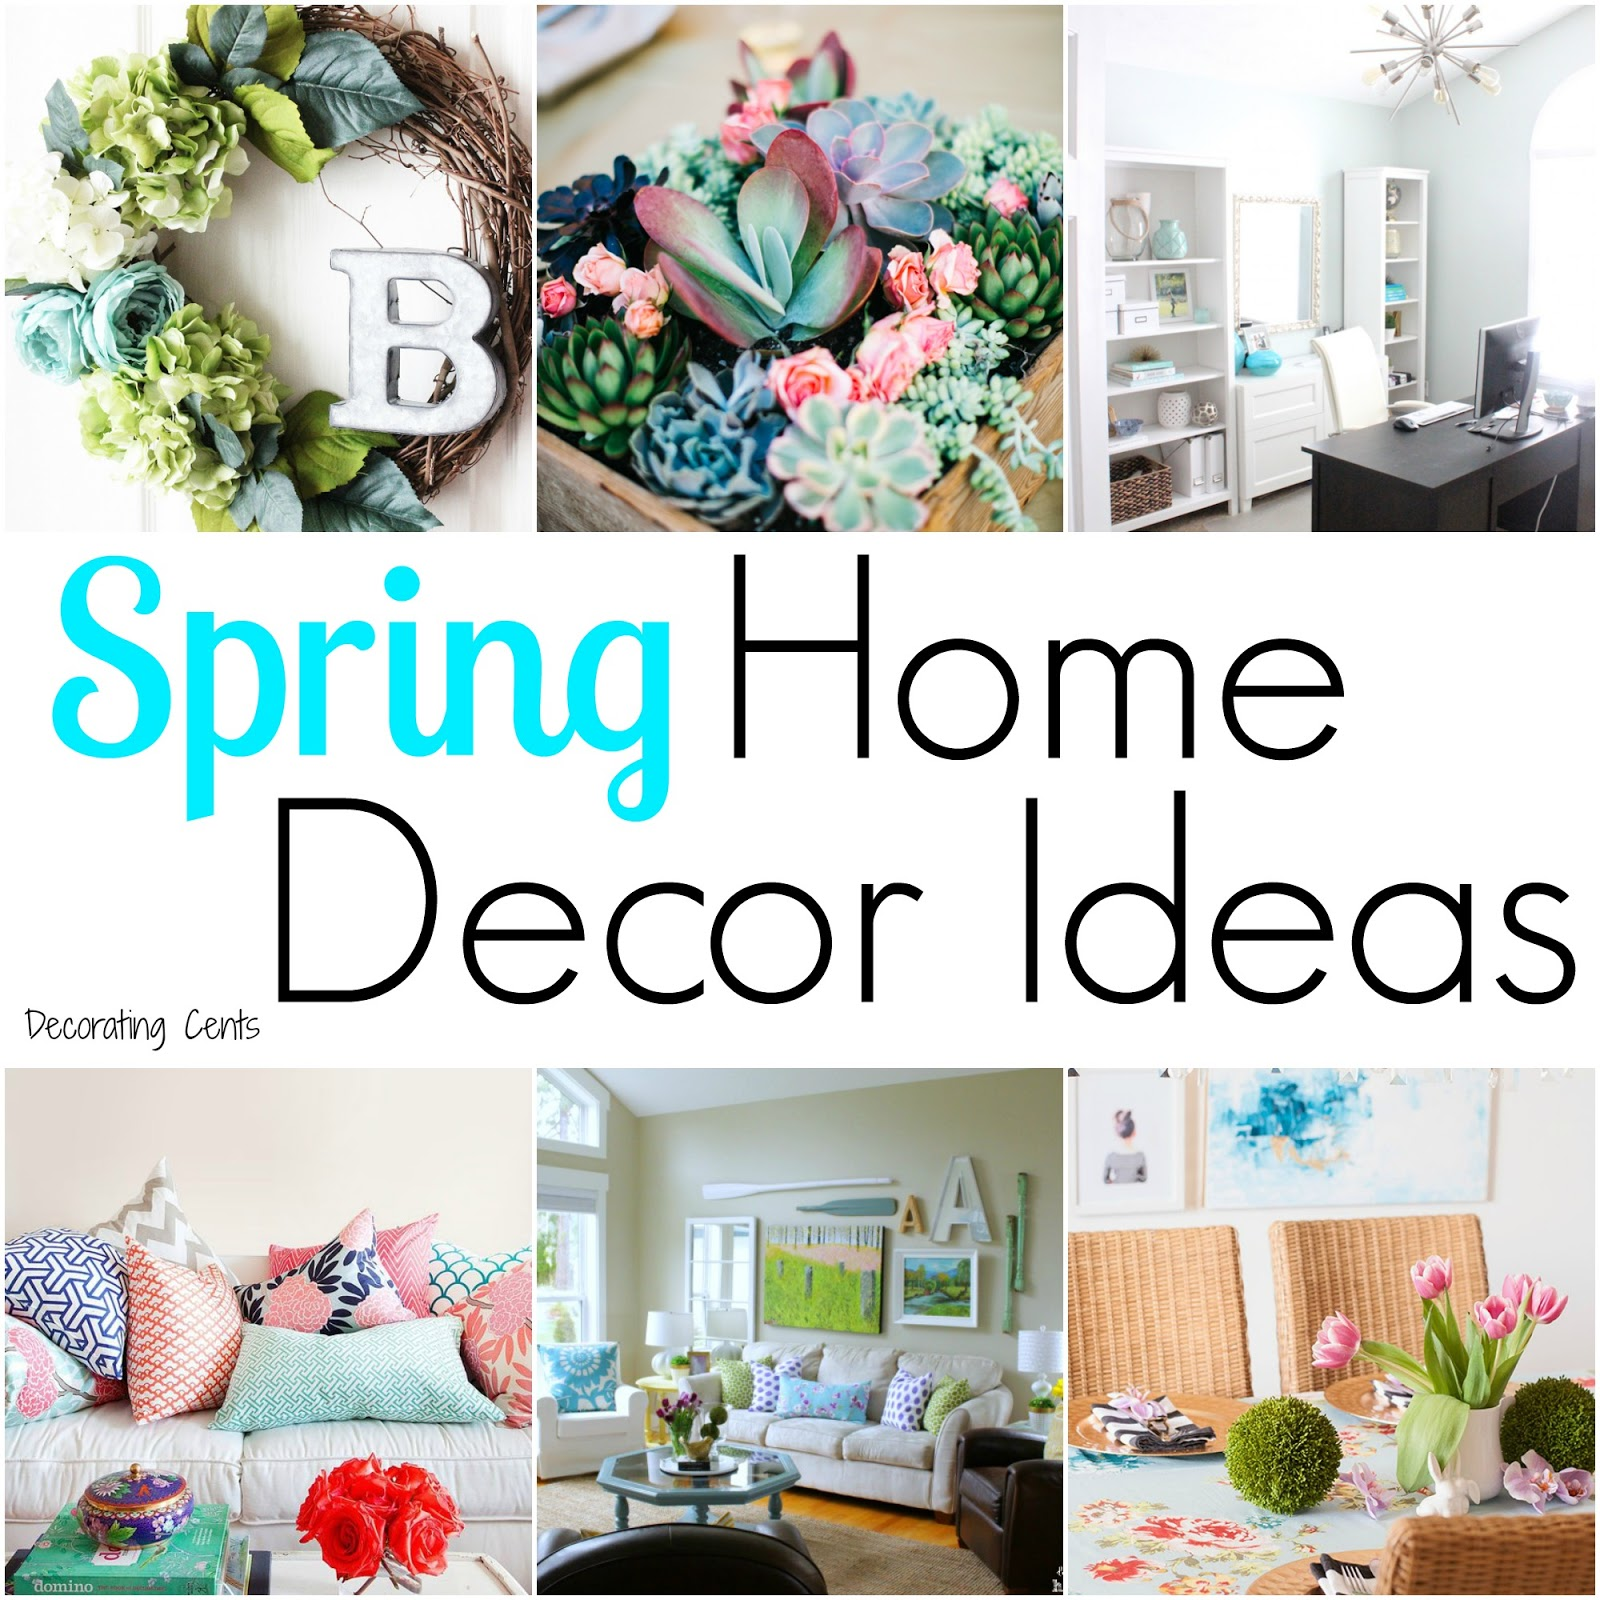 Decorating cents spring home decor ideas for Ideas for home